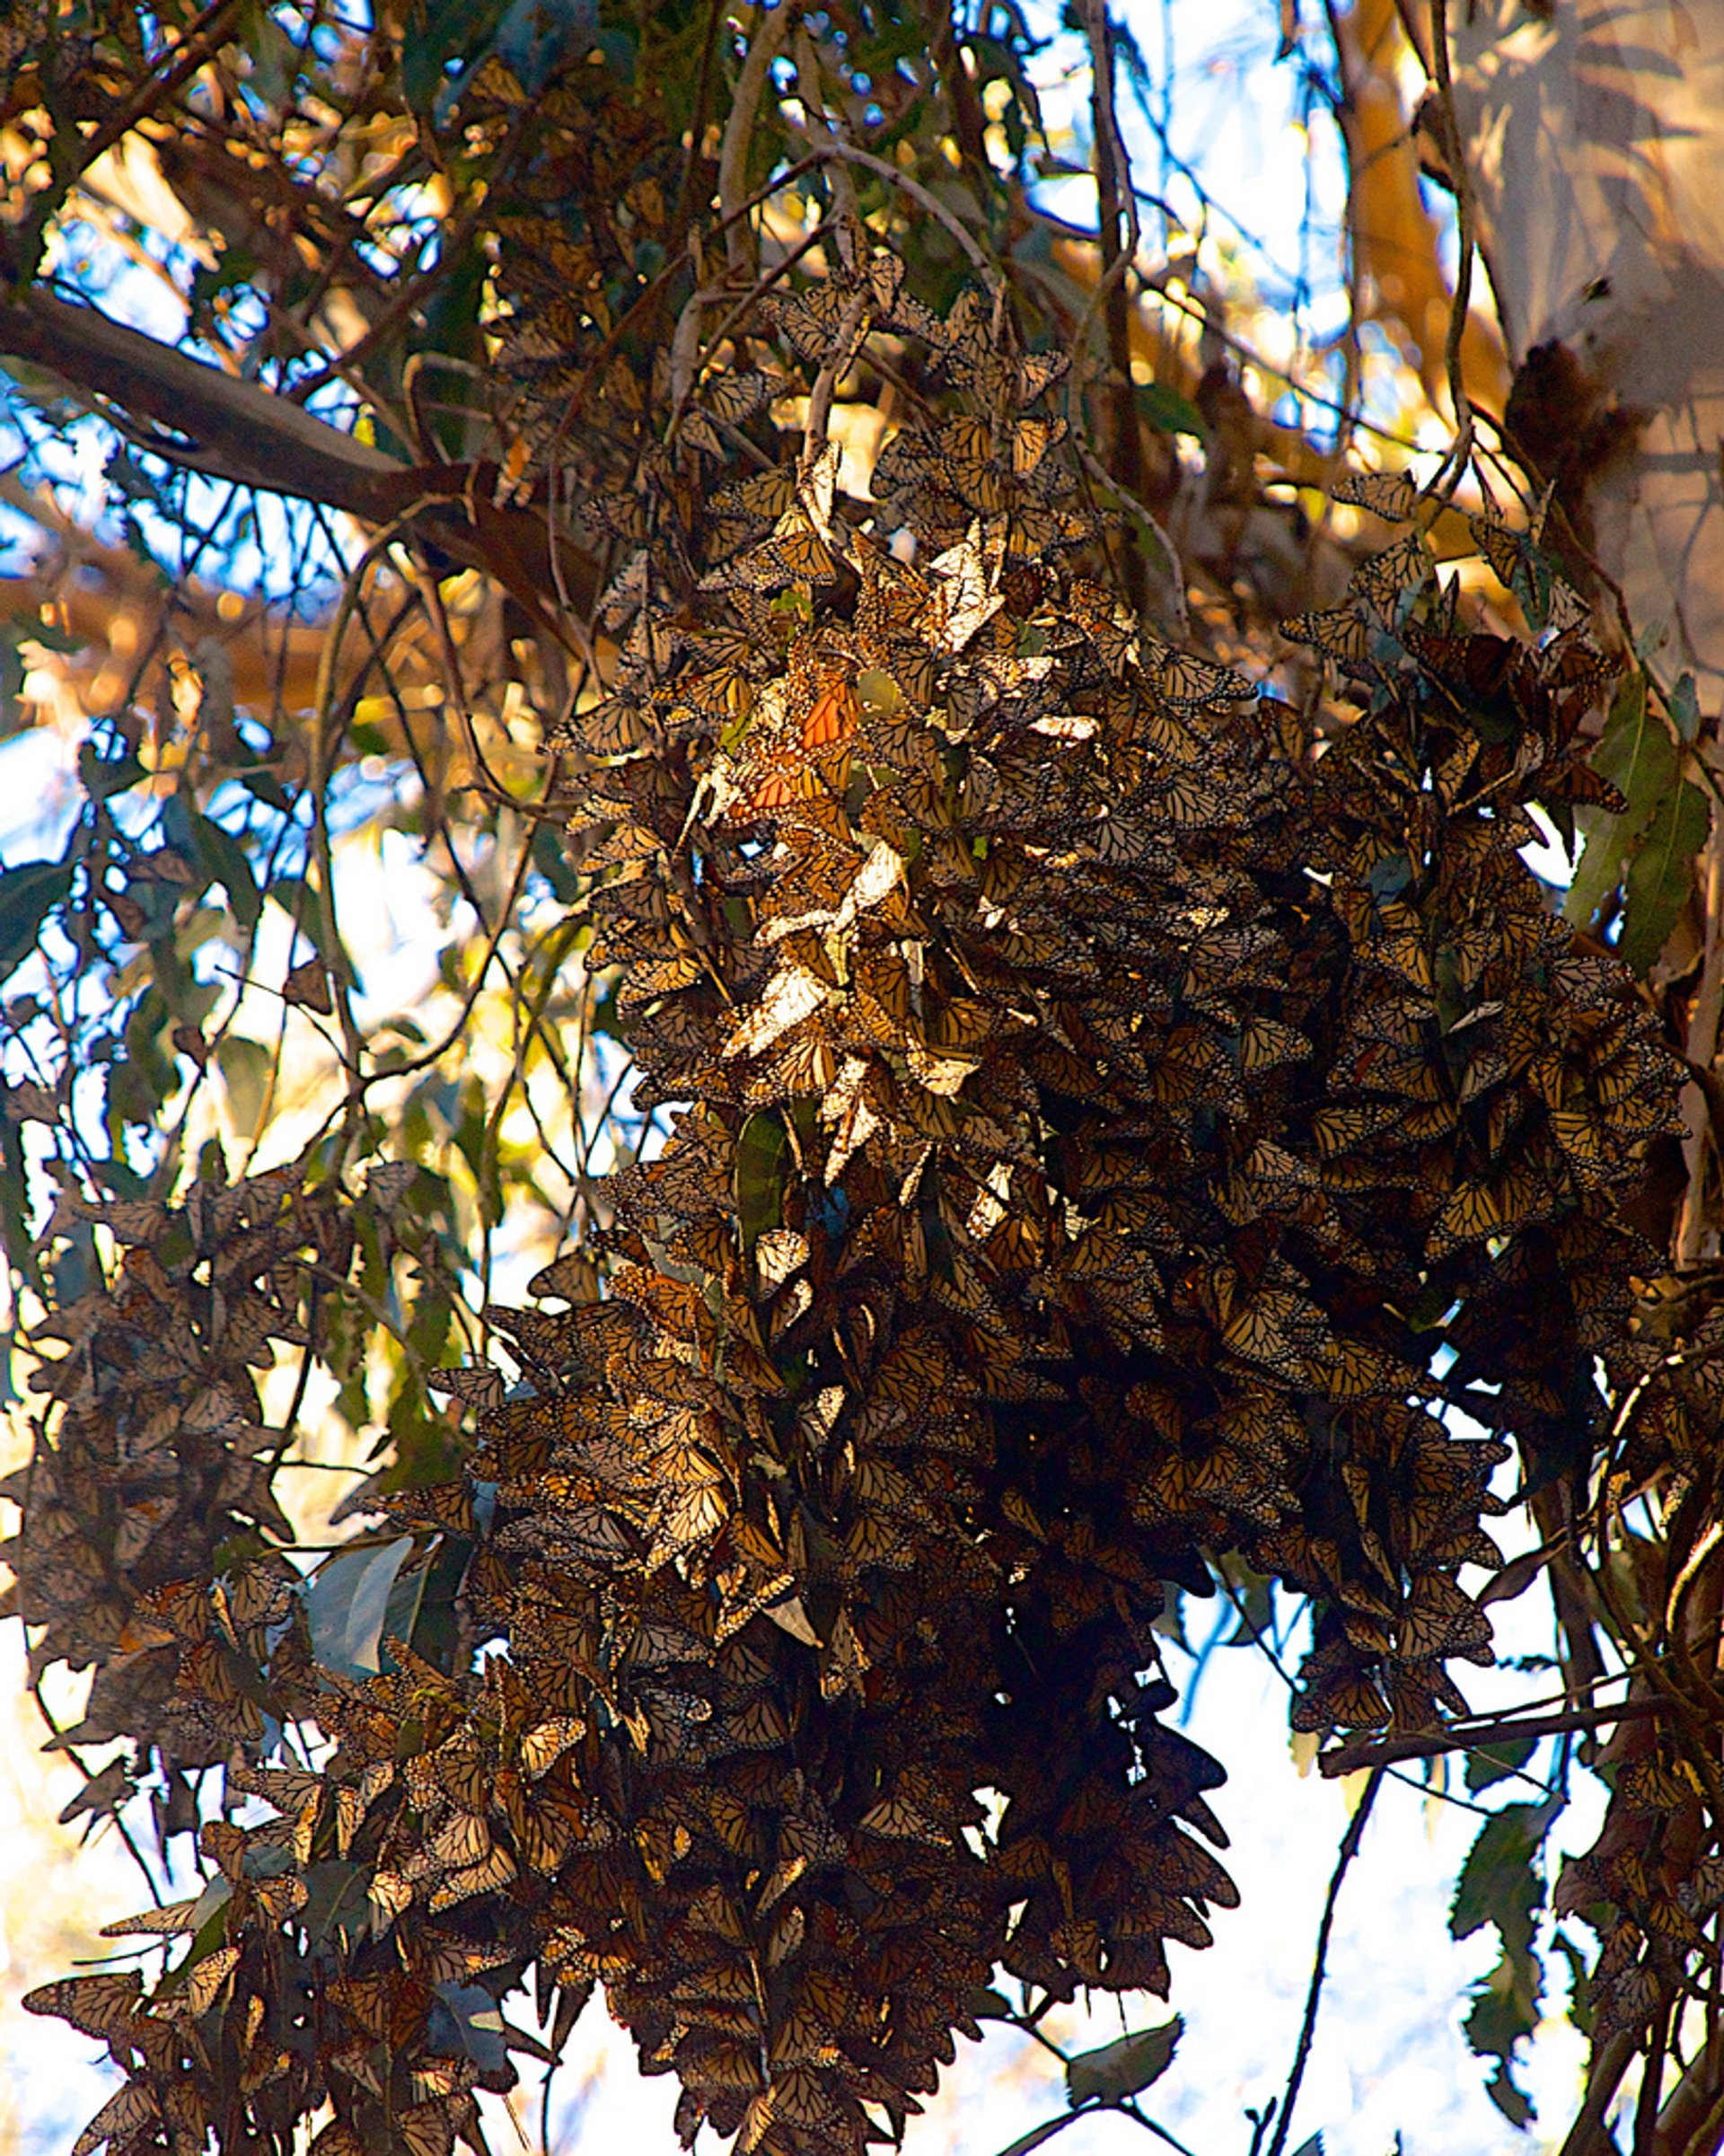 Goleta Monarch Butterfly Grove  in Los Angeles - Best Season 2020